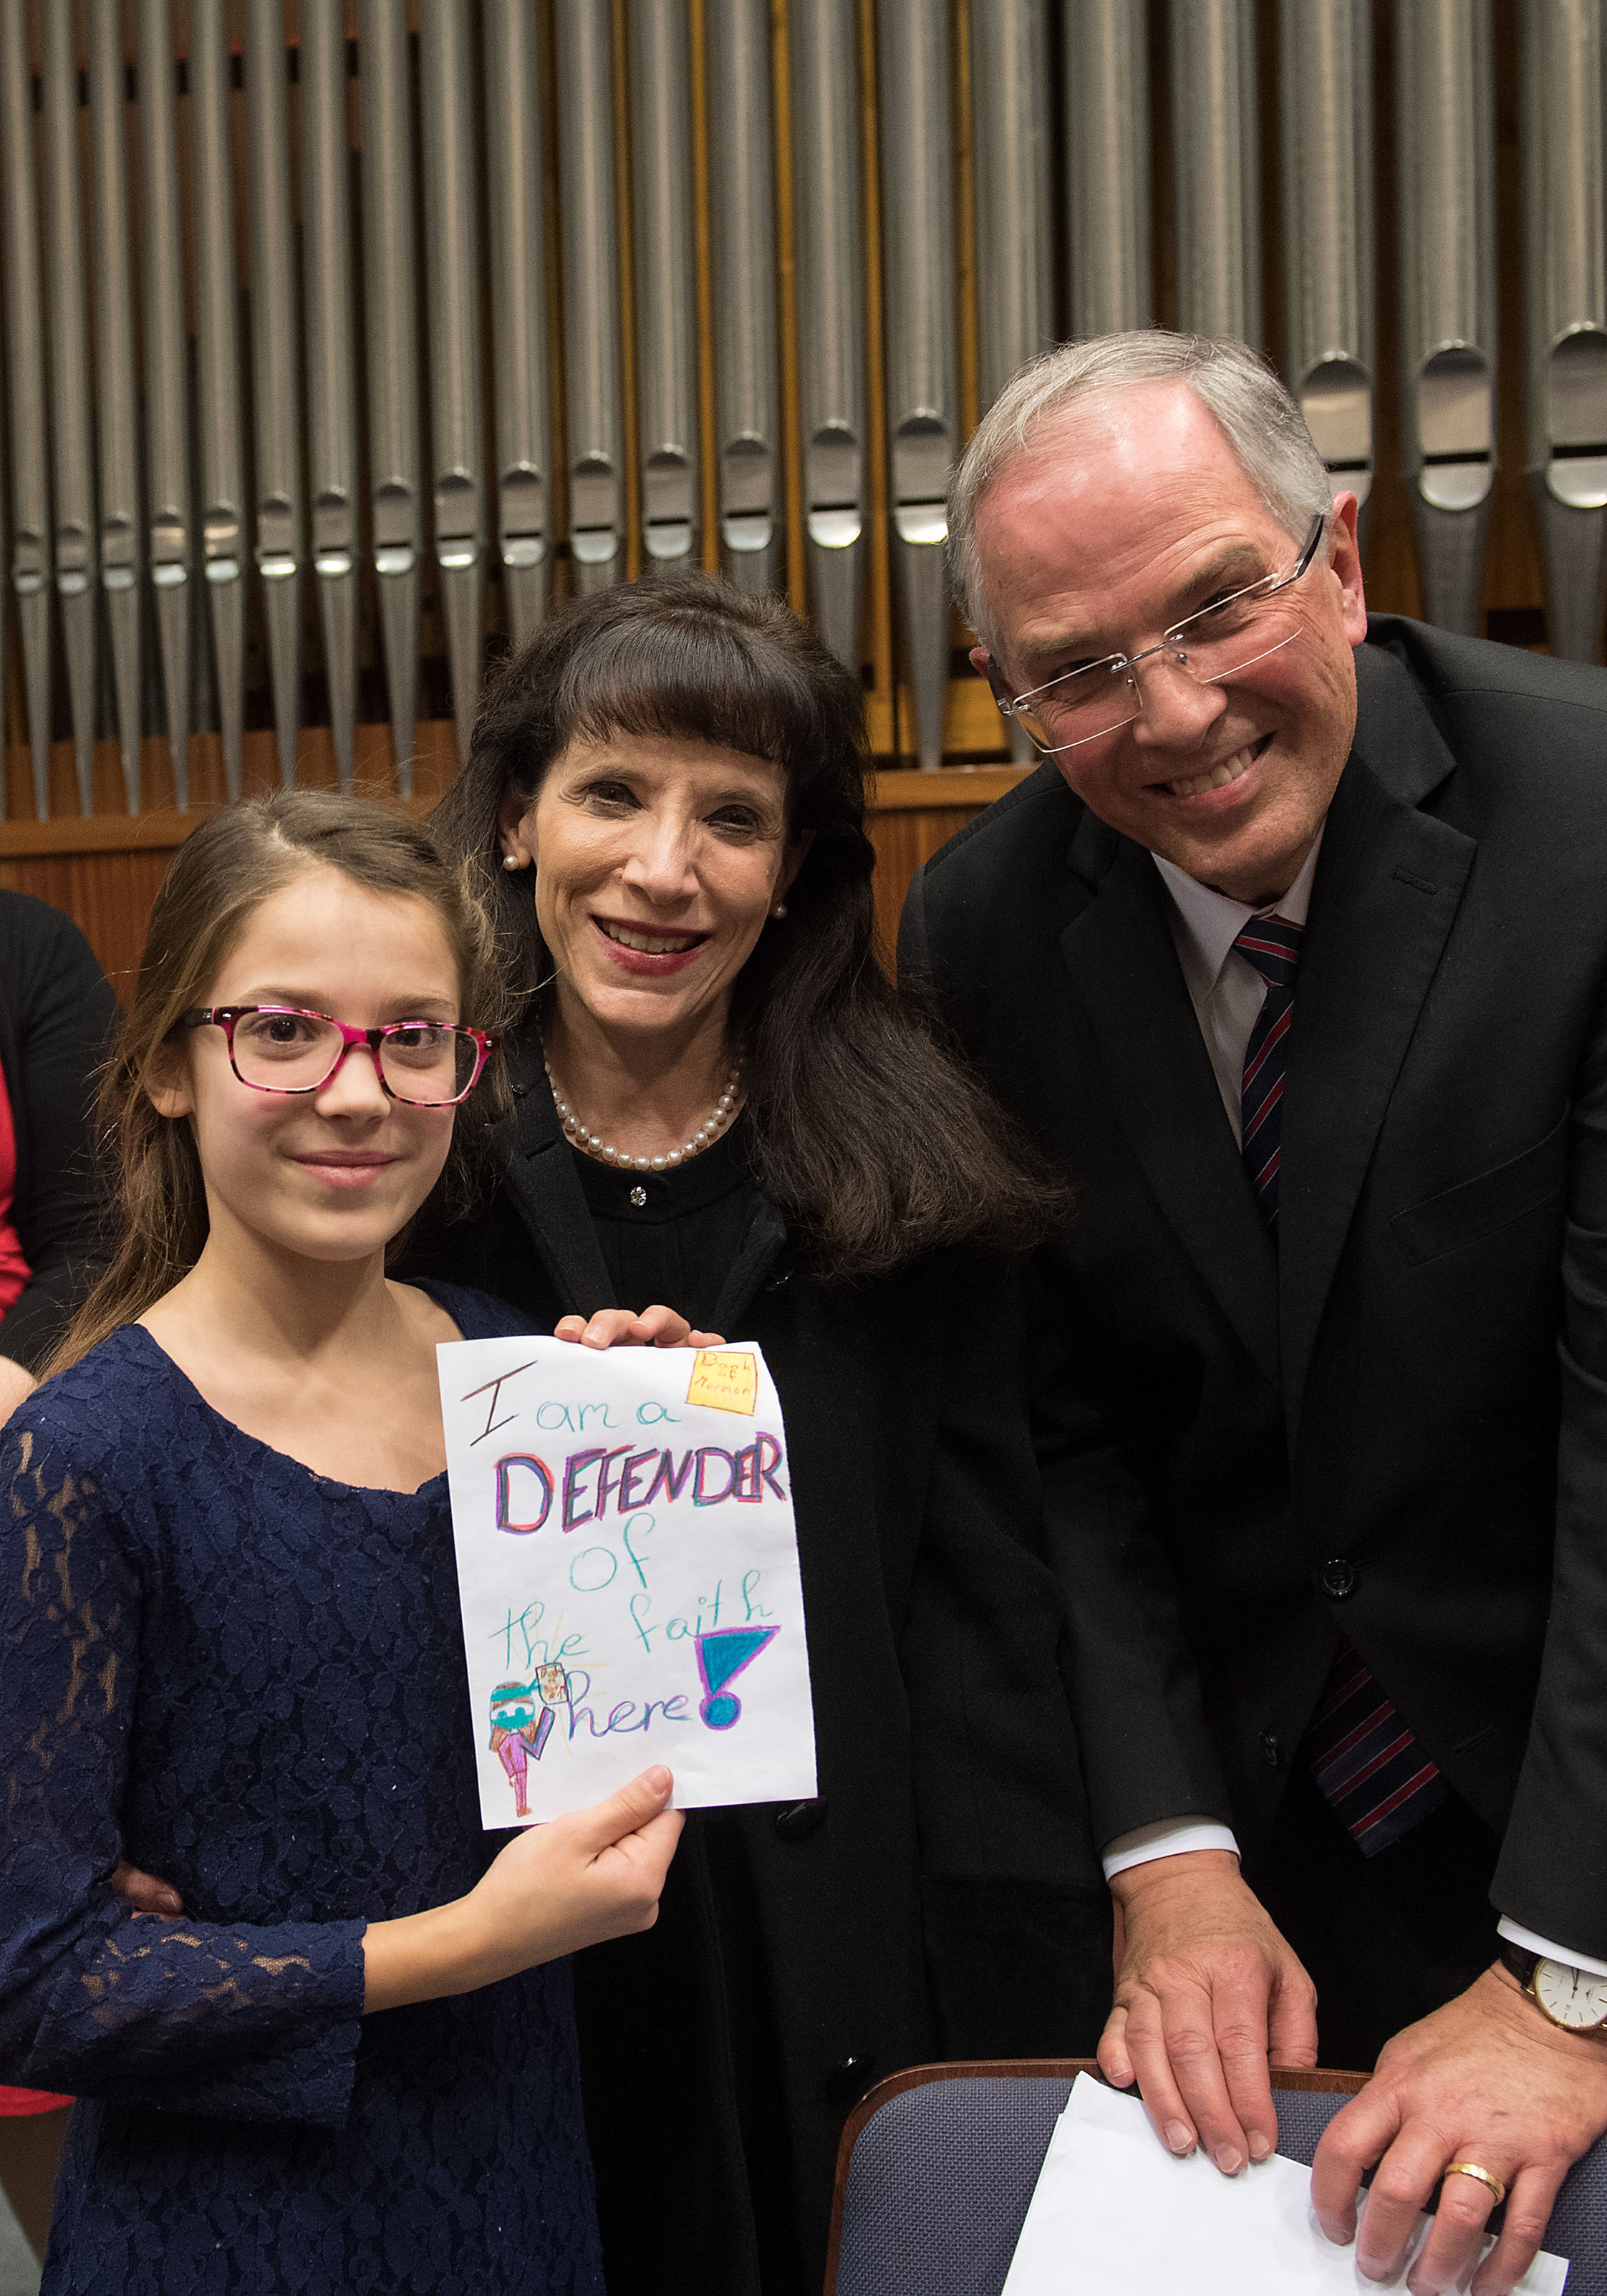 """Elder Neil L. Andersen and Sister Kathy Andersen talk with a young girl after a meeting with the members in Vienna. The young girl had made a sign during the meeting that read, """"I am a defender of the faith."""""""